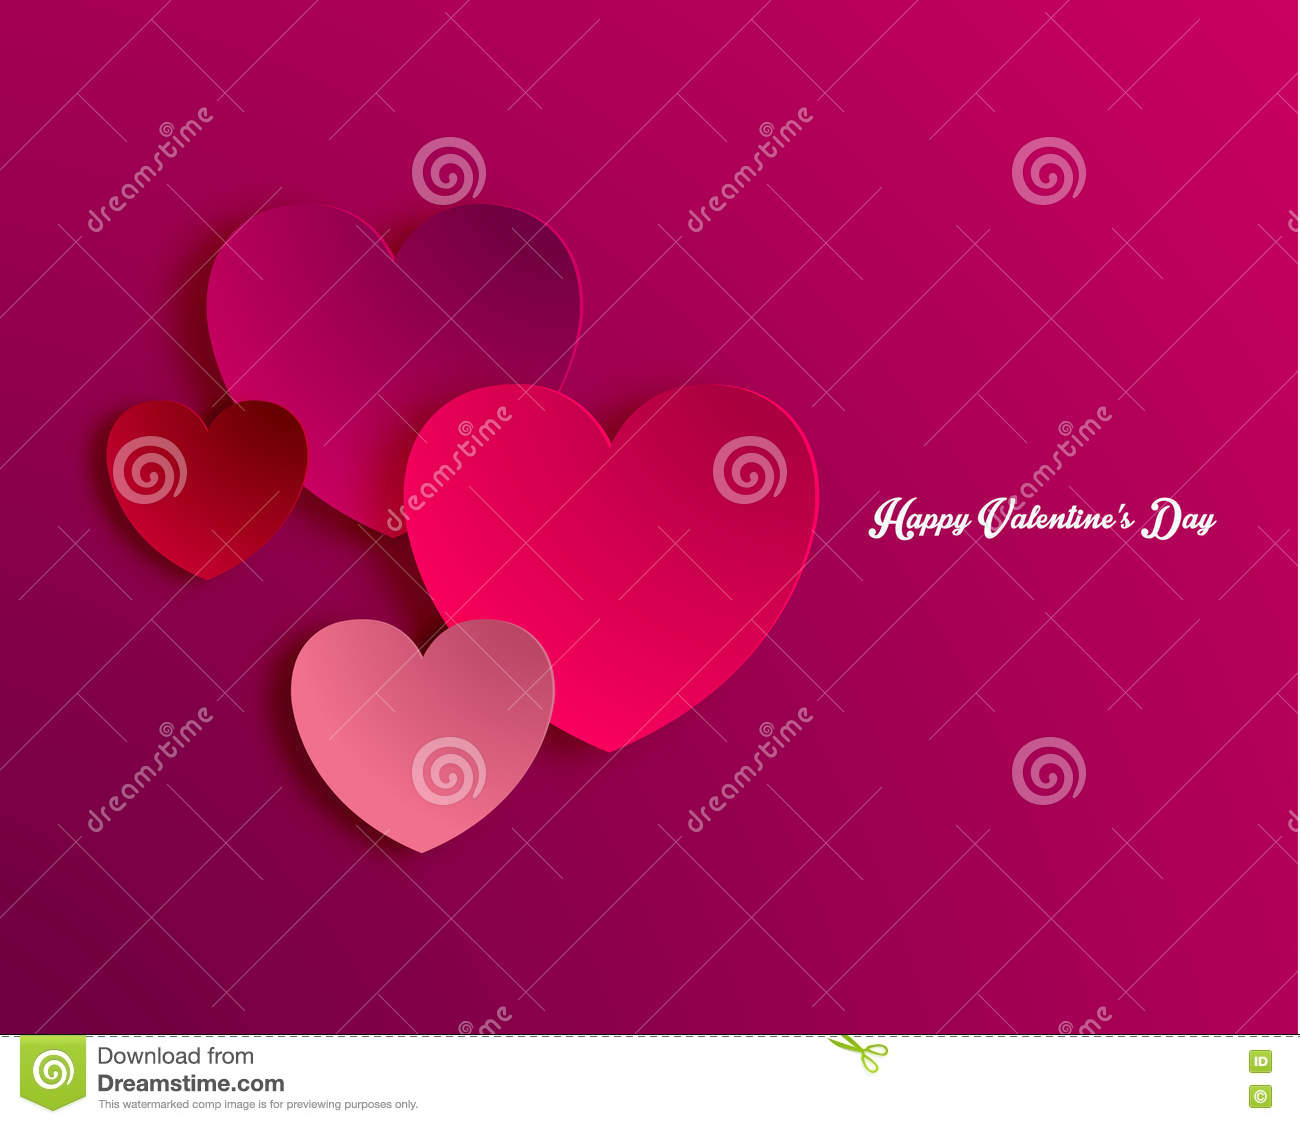 Heart Shape Valentine's Day Paper Cut-out Vector Stock